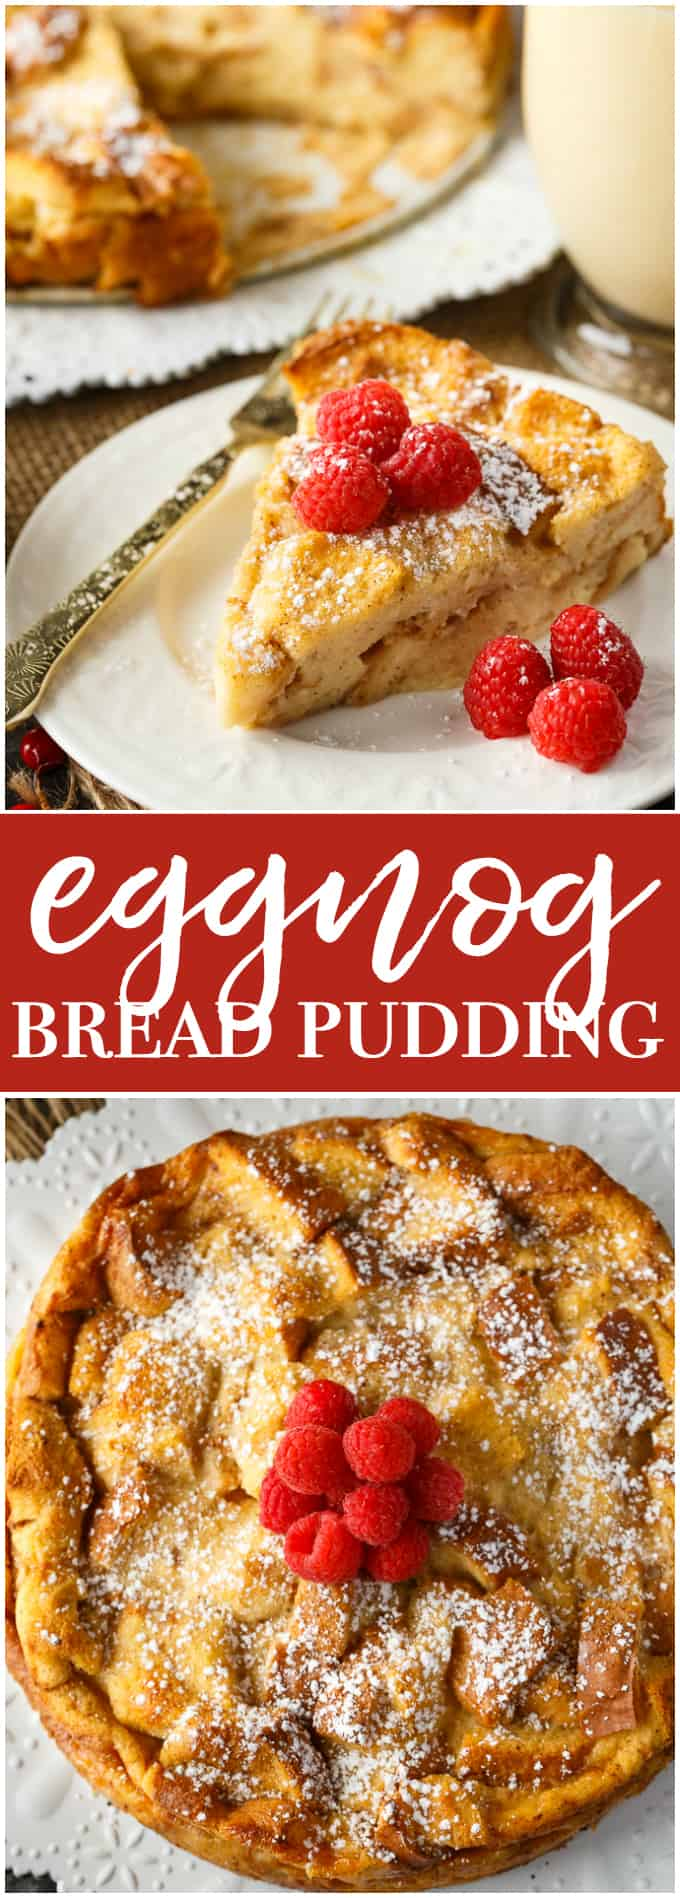 Eggnog Bread Pudding - Serve it warm from the oven with a big glass of eggnog. Each bite practically melts in your mouth.